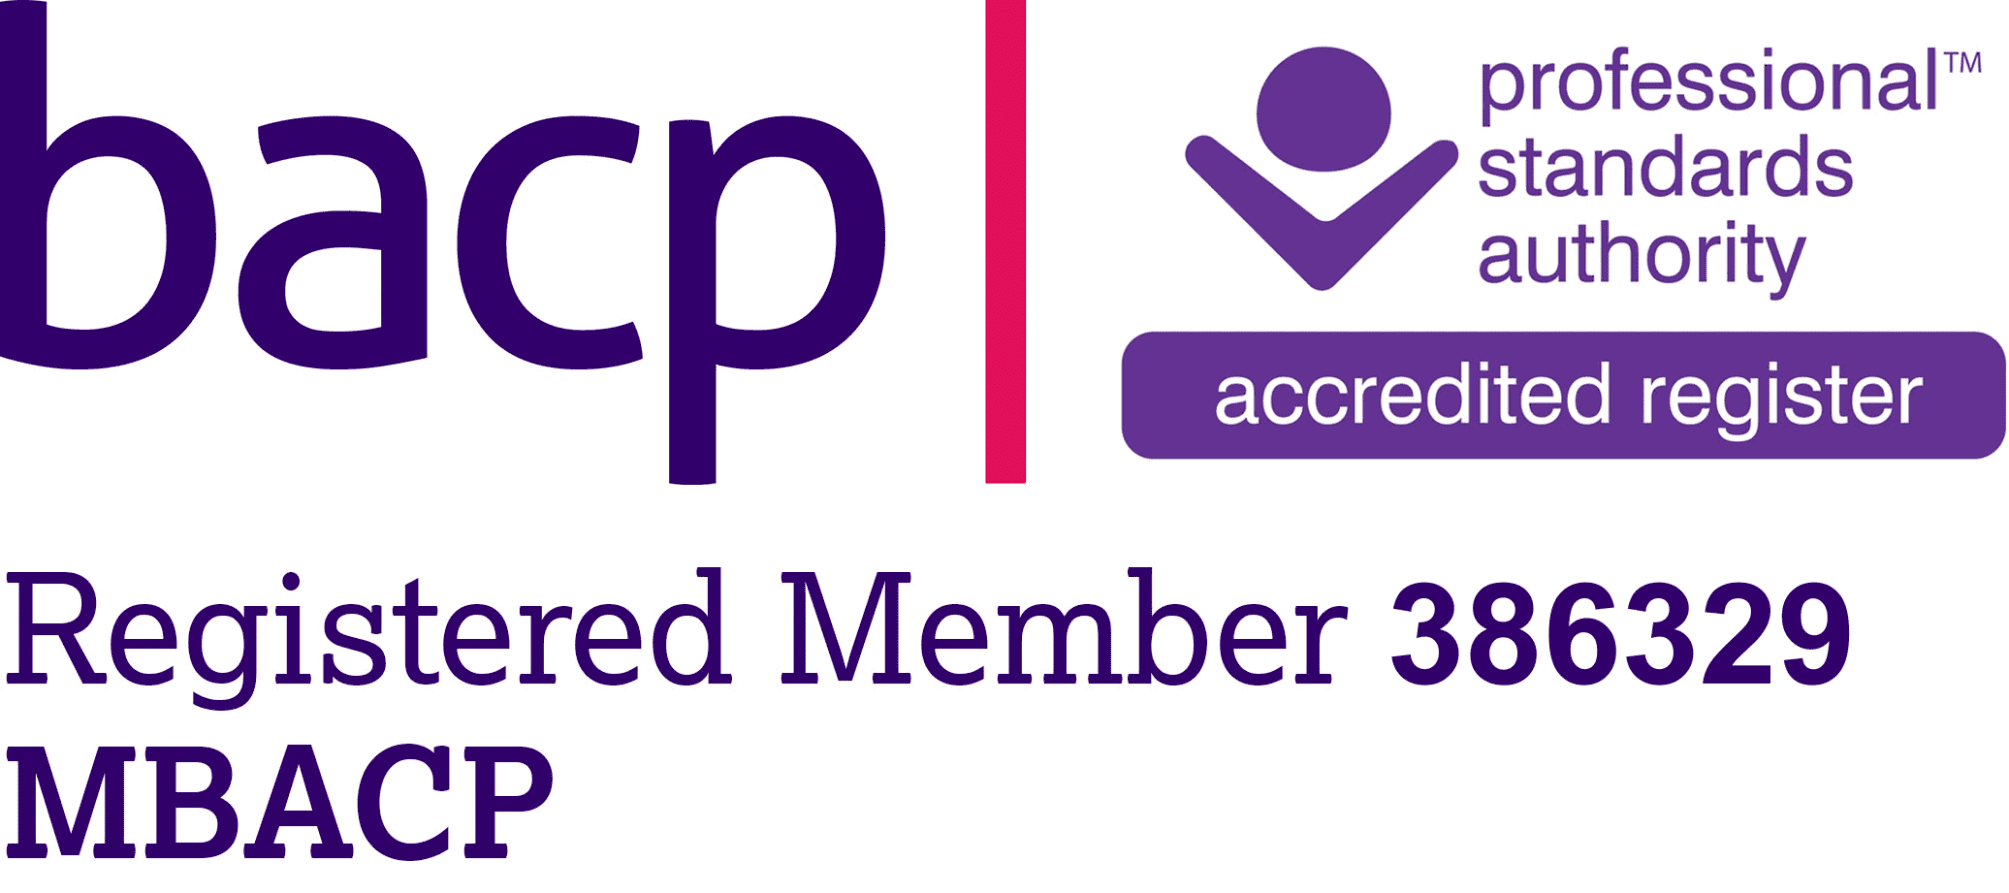 Becky Williams BACP Member 386329